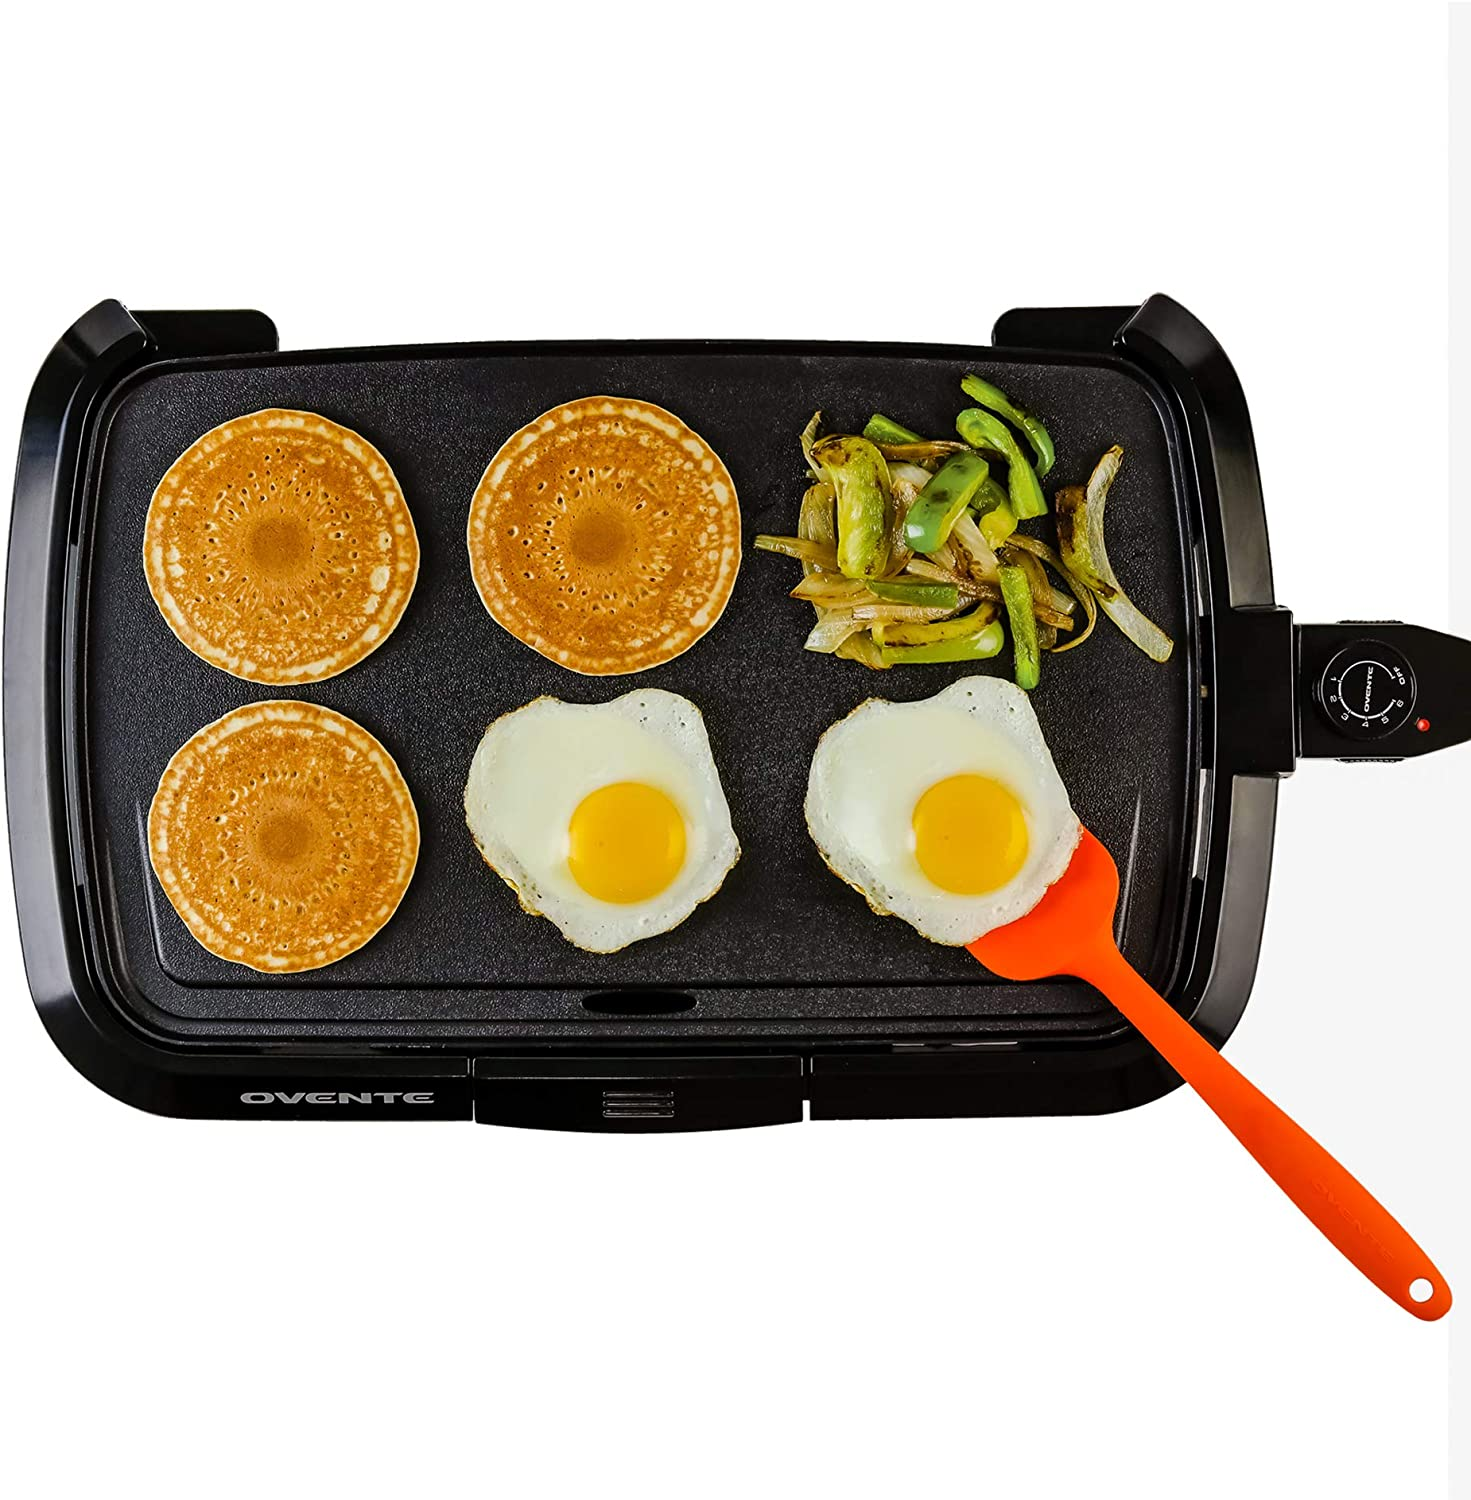 OVENTE GD1610B 1200W Electric Griddle, 16 10 Non-Stick Plate, Temperature Probe and Control Knob, Indicator Light, Grease Channel and Drip Tray, Black